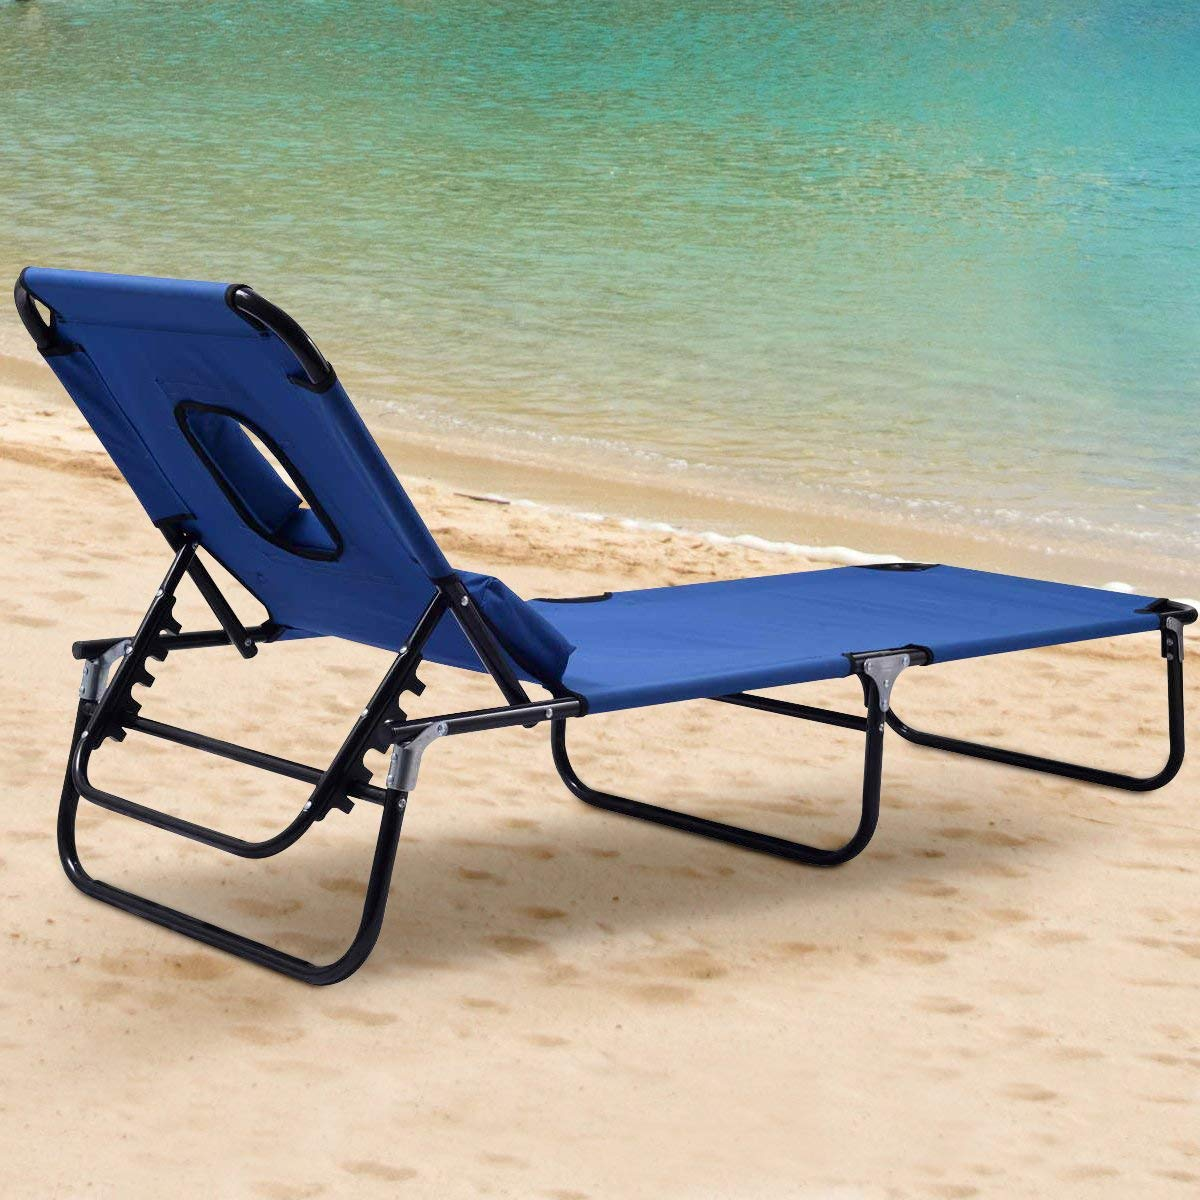 Fantastic G Chaise Lounge Chair Outdoor Folding Bed Patio Beach Camping Recliner W Hole For Face Pool Yard Support 300 Lbs Ocoug Best Dining Table And Chair Ideas Images Ocougorg